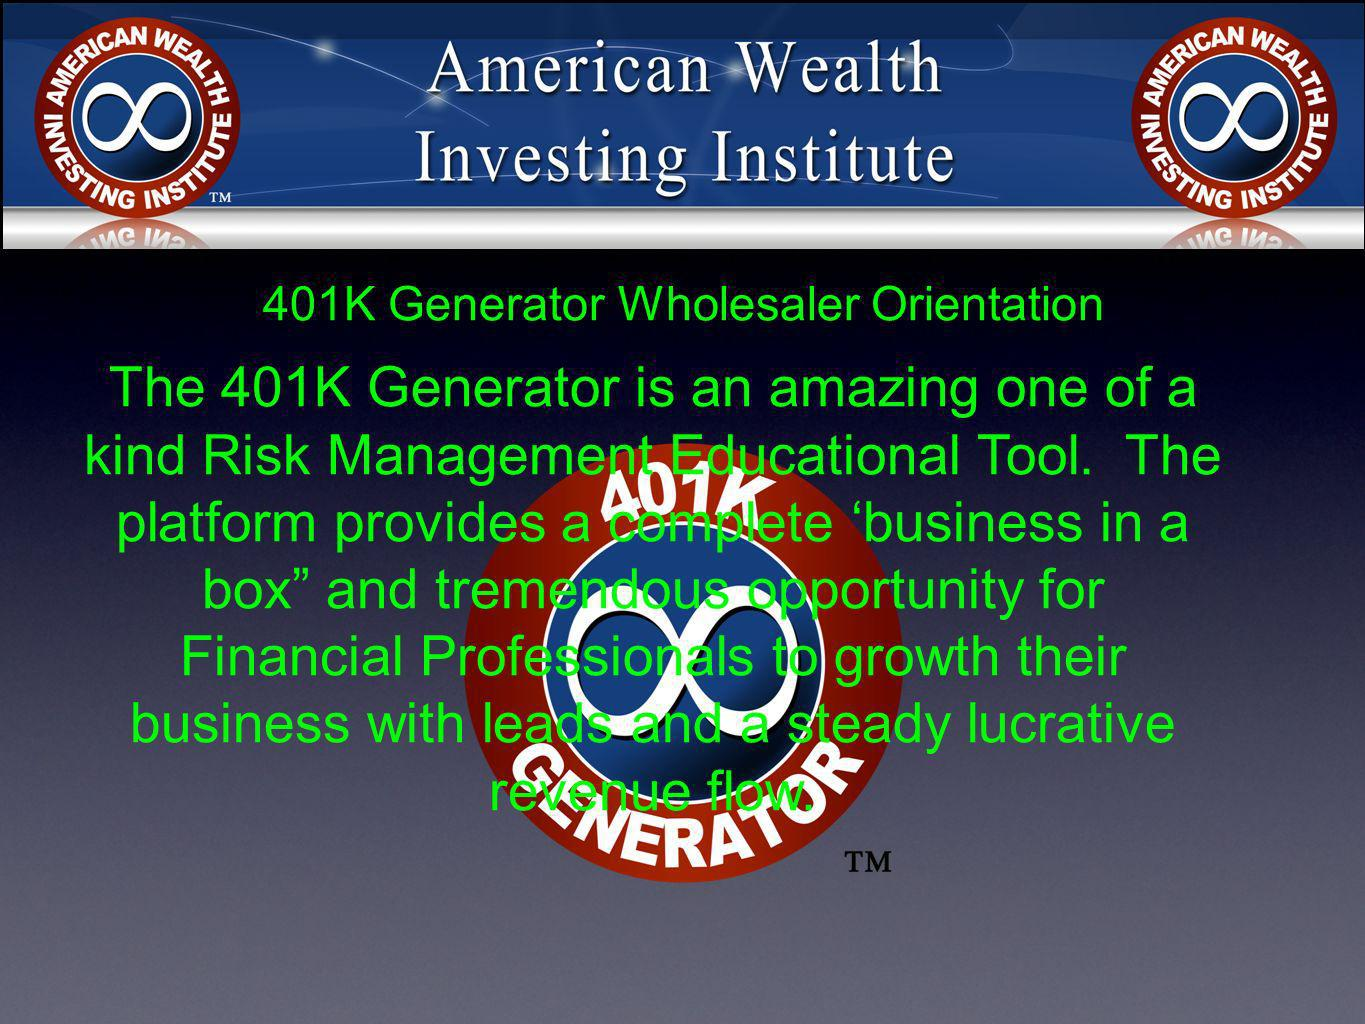 401K Generator Wholesaler Orientation The 401K Generator is an amazing one of a kind Risk Management Educational Tool. The platform provides a complet